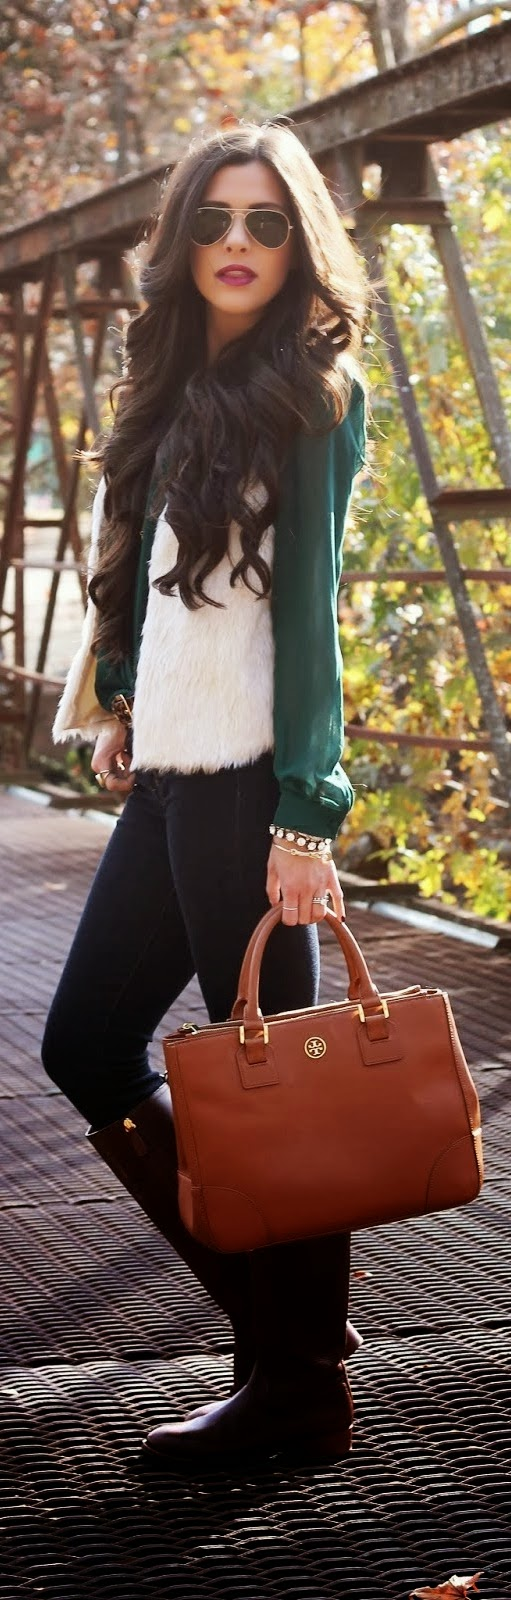 Green shirt, black denim pant and faux fur vest